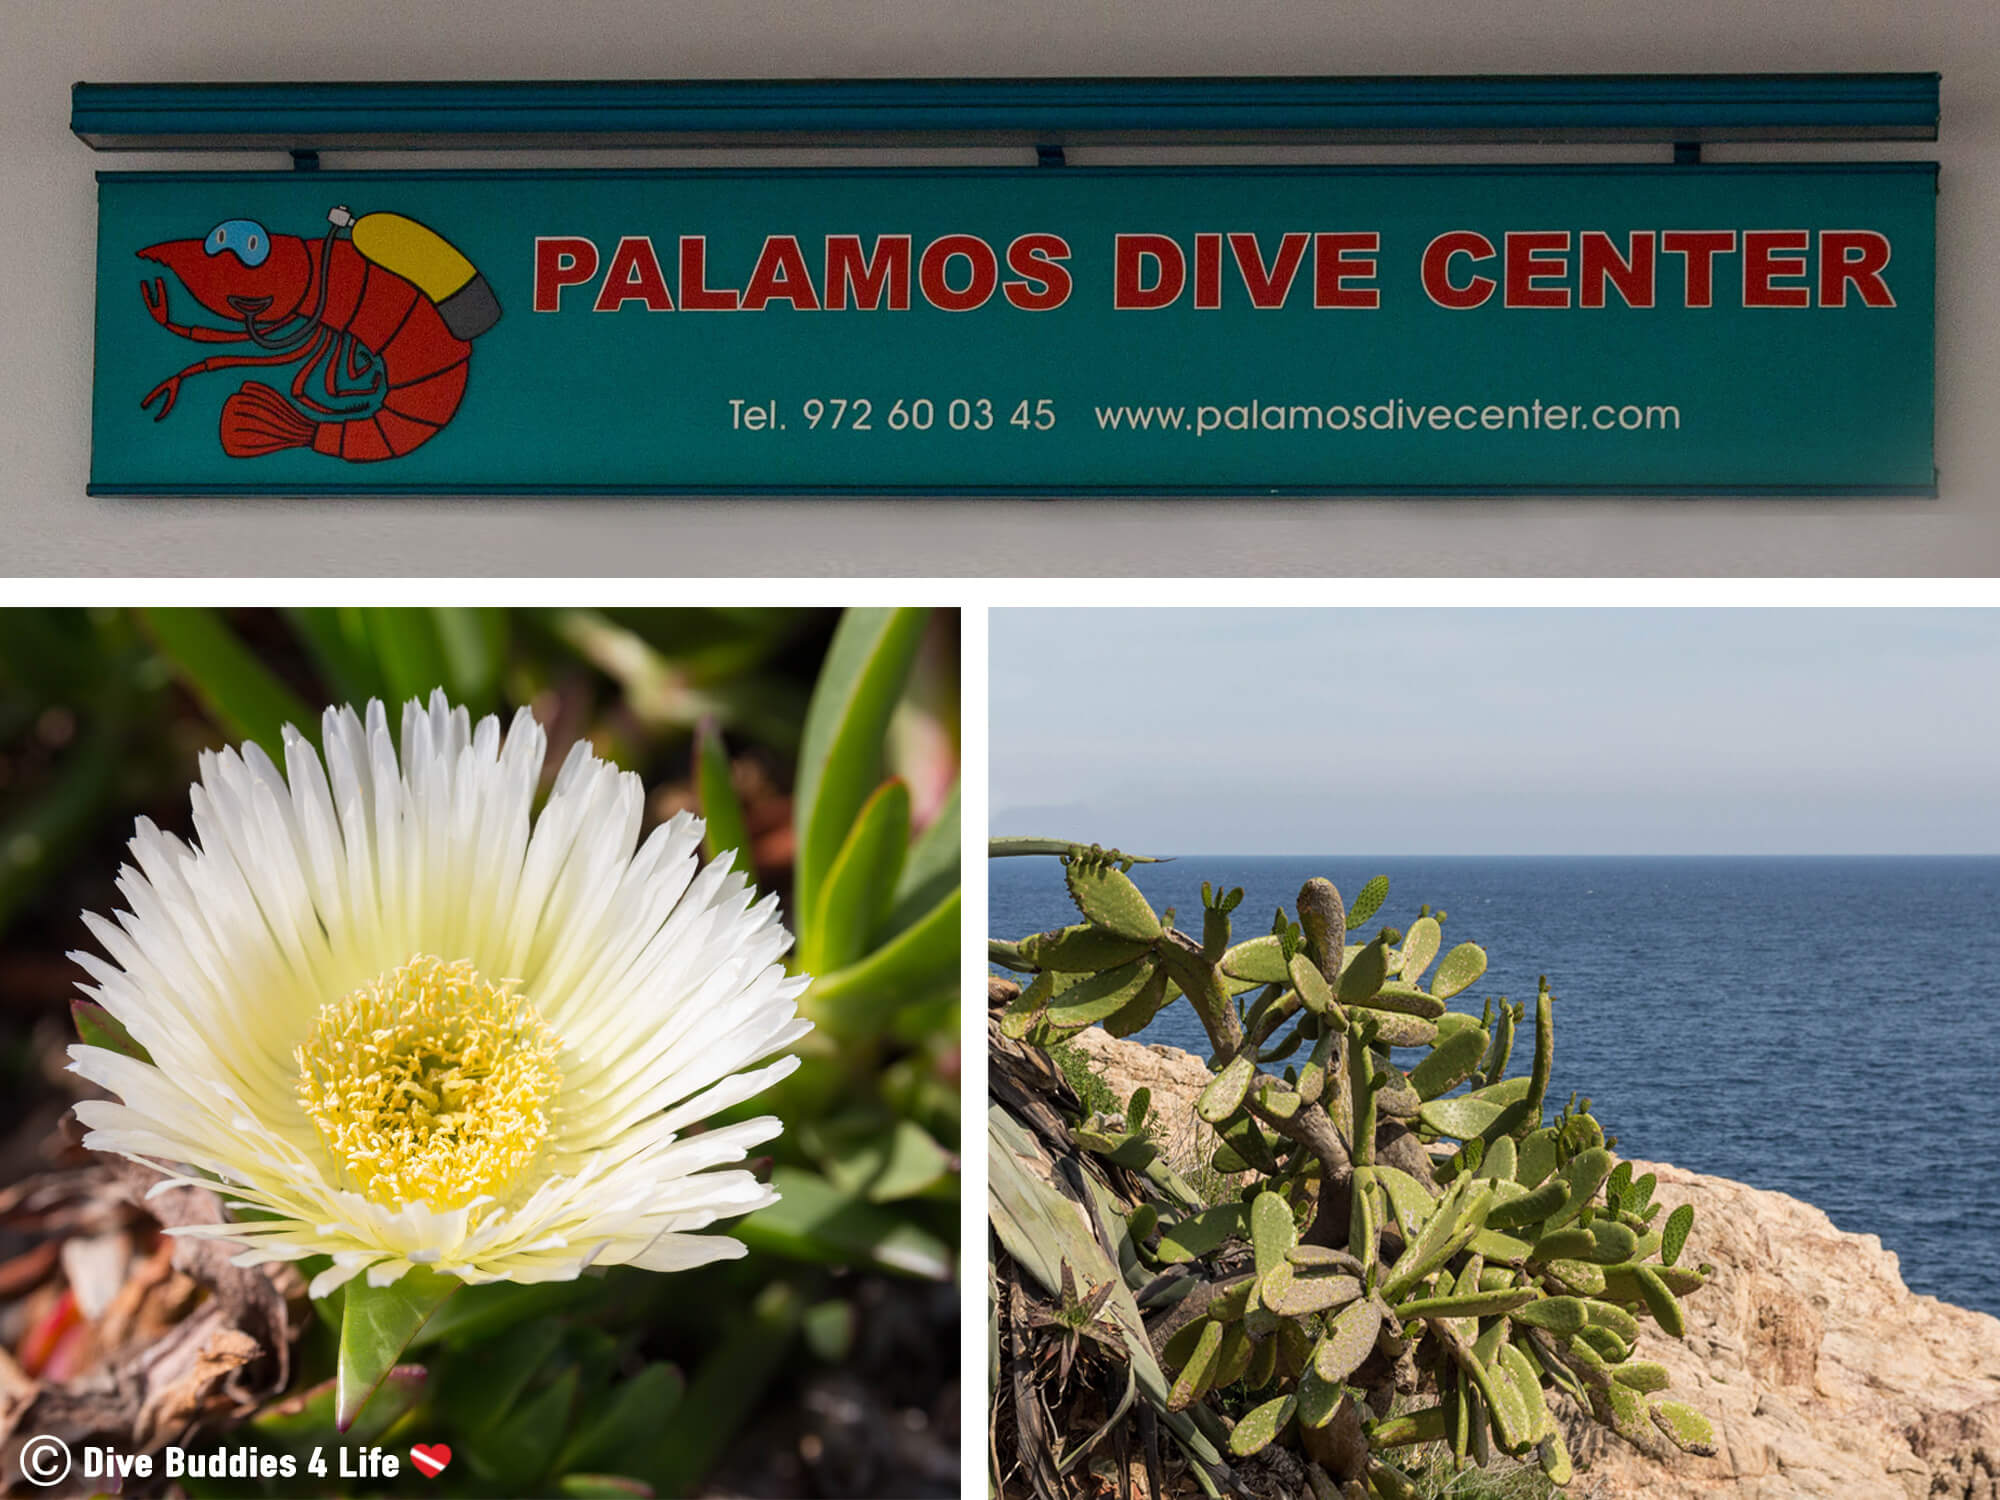 Palamos Dive Center On The Costa Brava Of Spain Mosaic